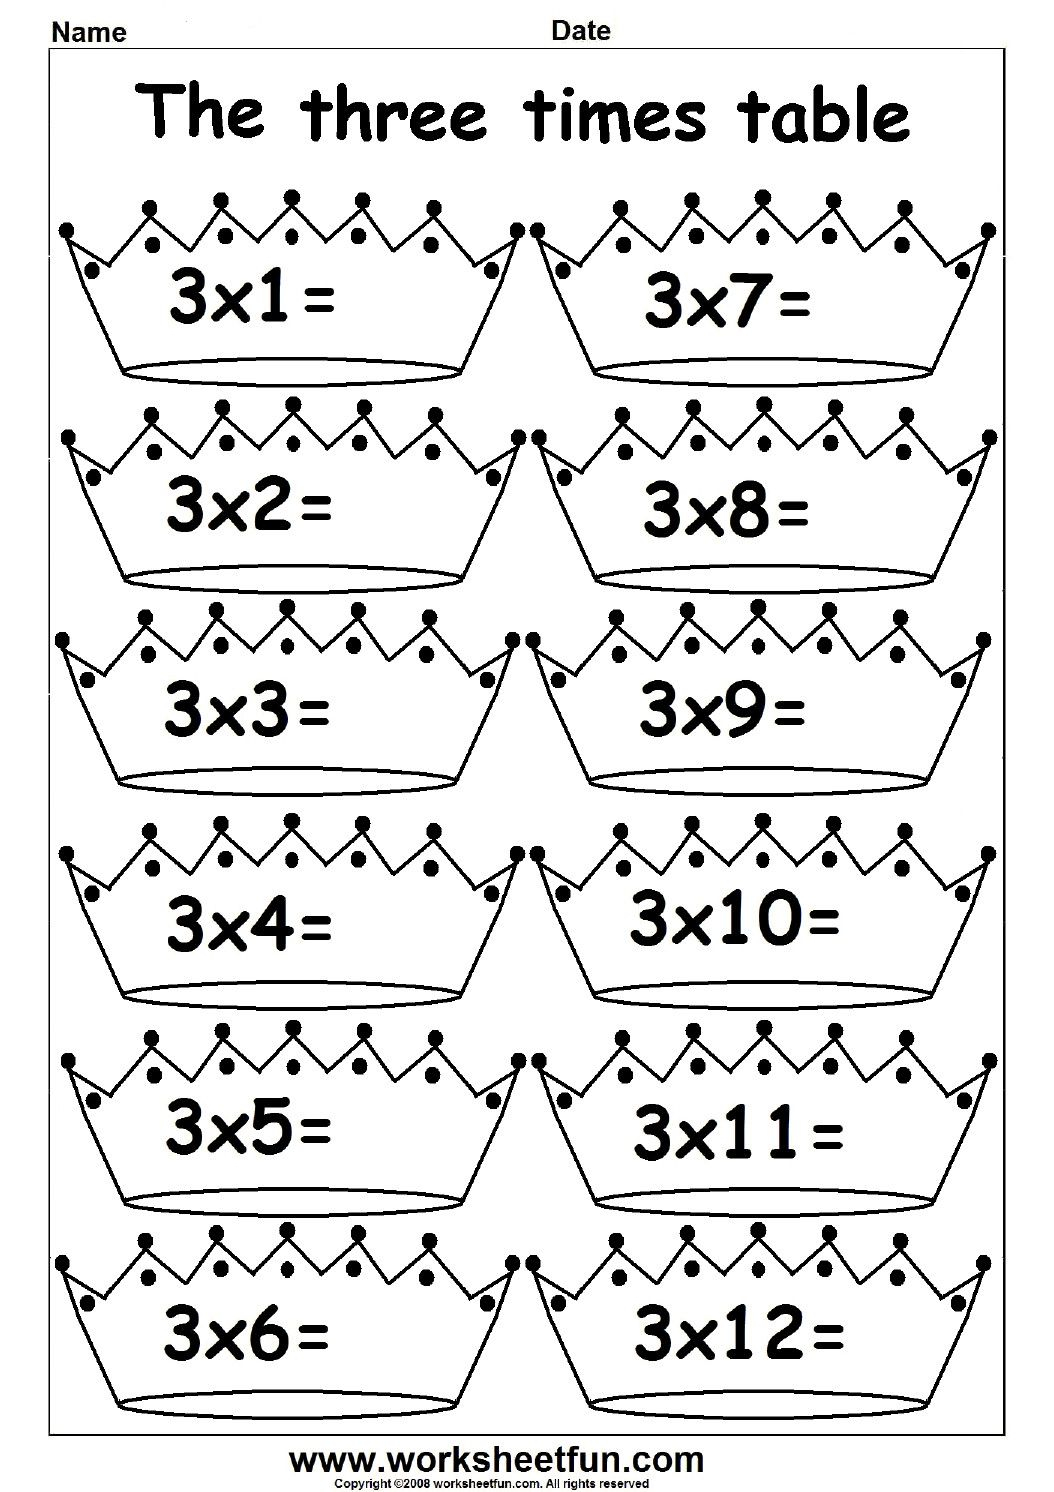 12 Times Tables Worksheets Printable